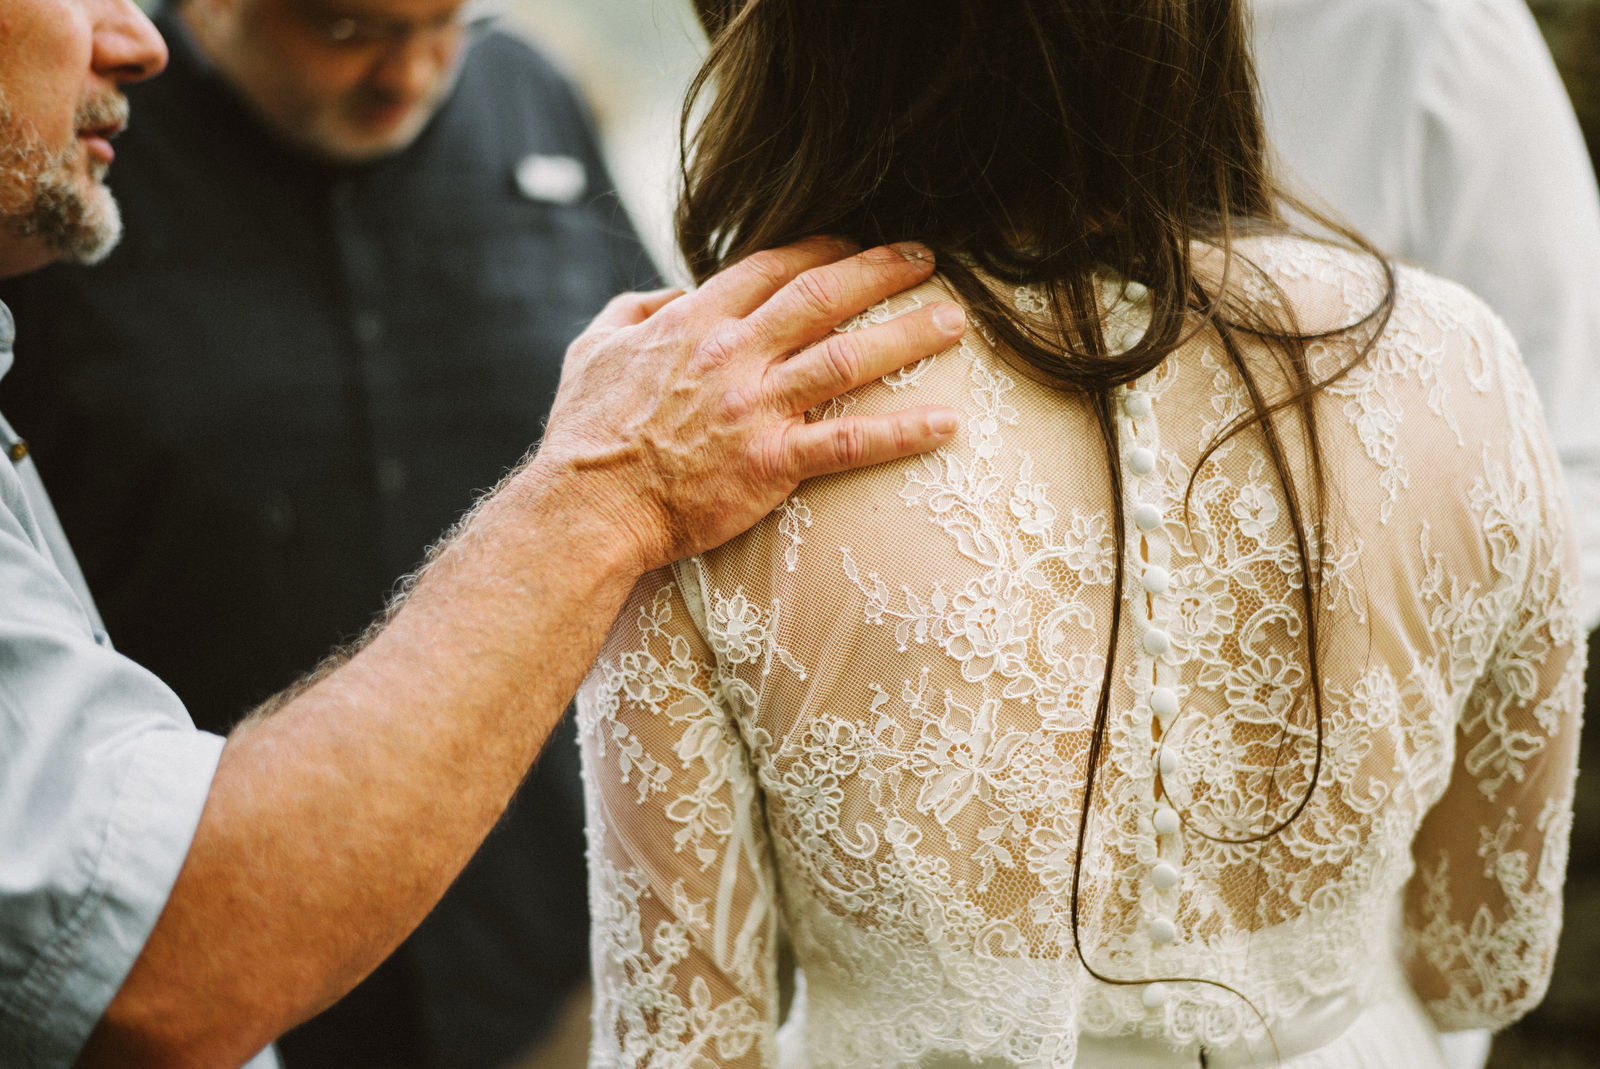 athena-and-camron-seattle-elopement-wedding-benj-haisch-rattlesnake-lake-christian-couple-goals57